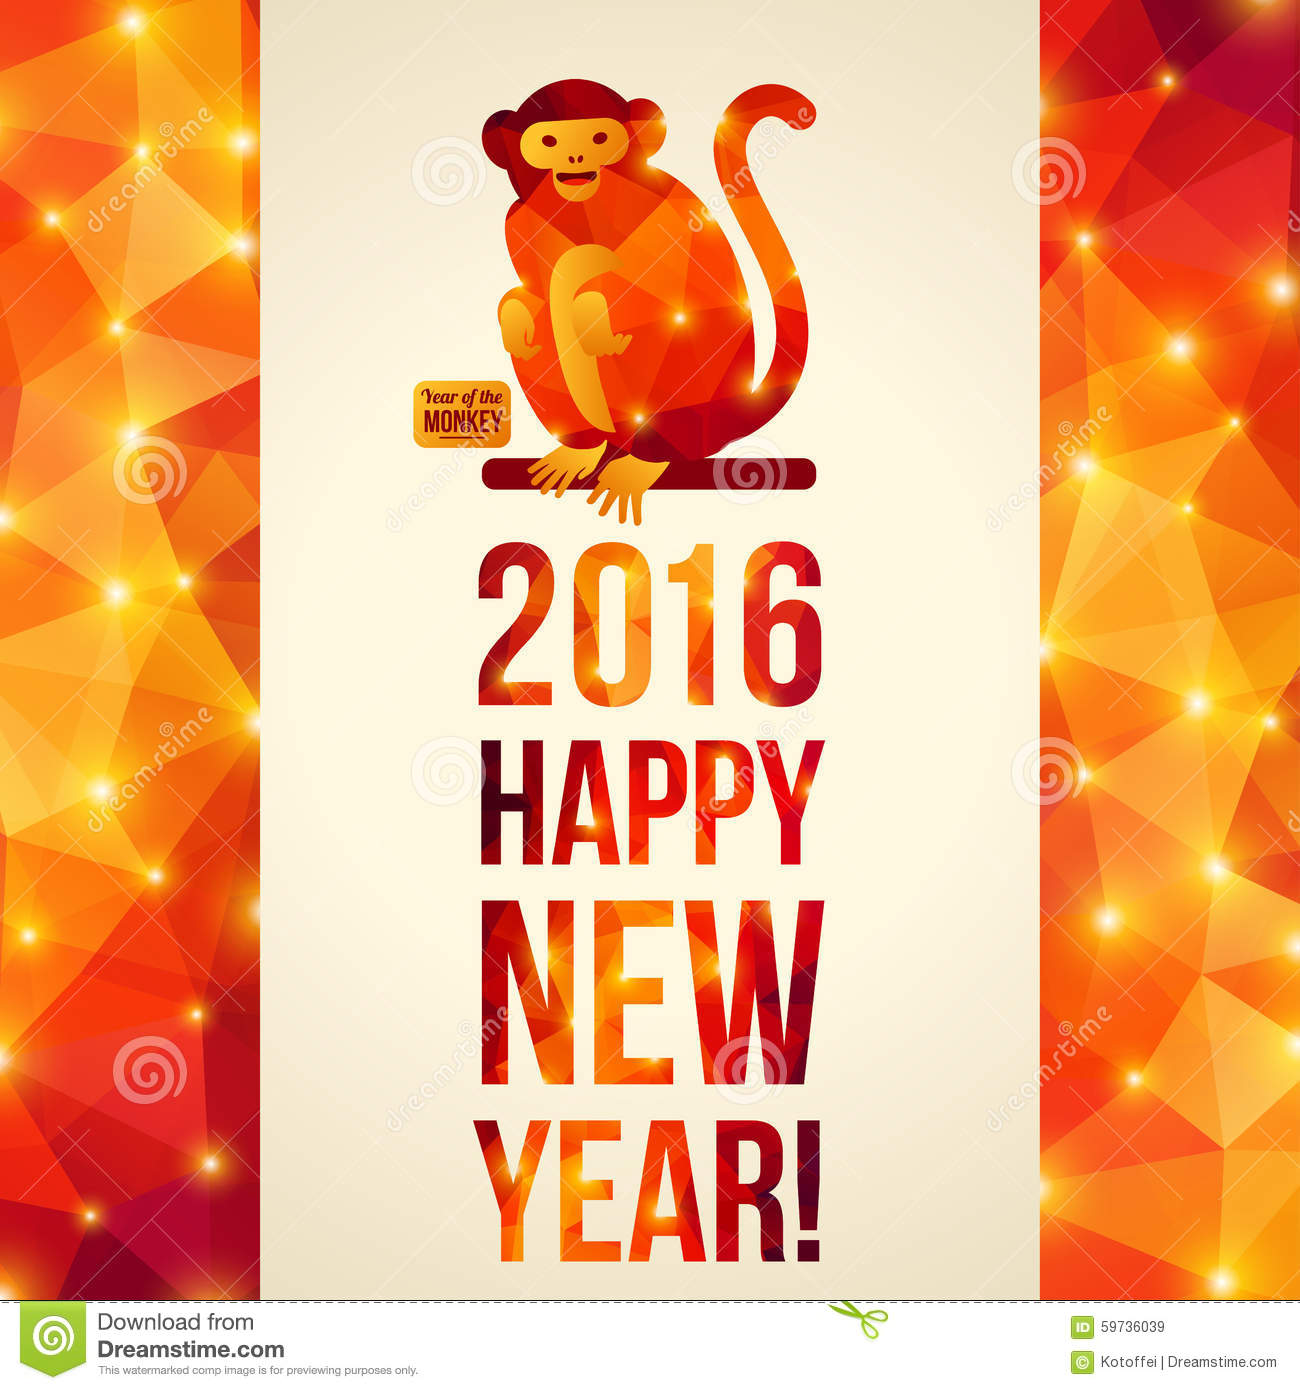 Happy Chinese New Year 2016 Greeting Card. Vector Illustration. Year ...